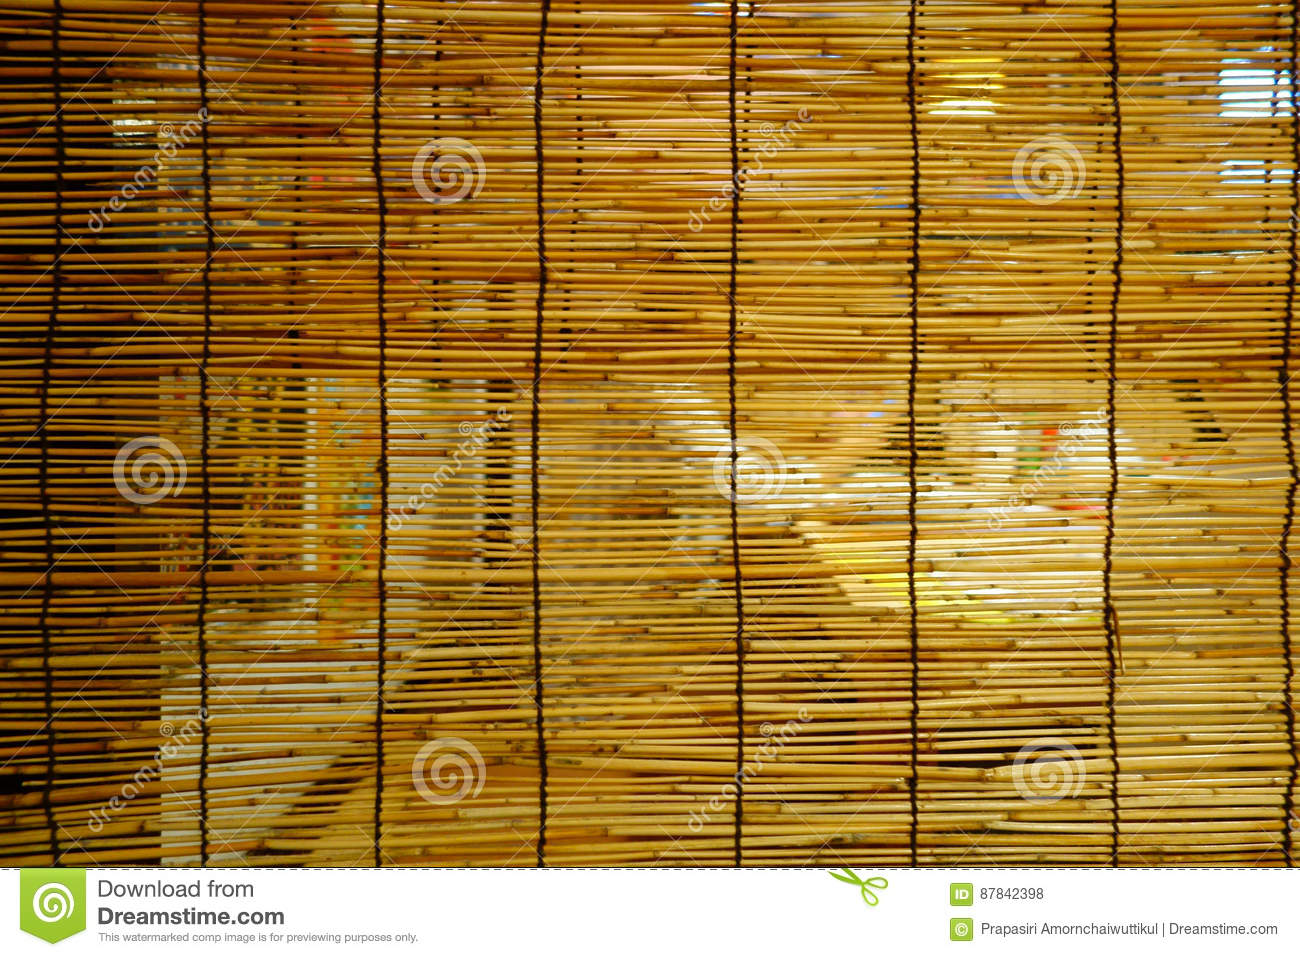 woven bamboo striped mat texture background. japanese restaurant